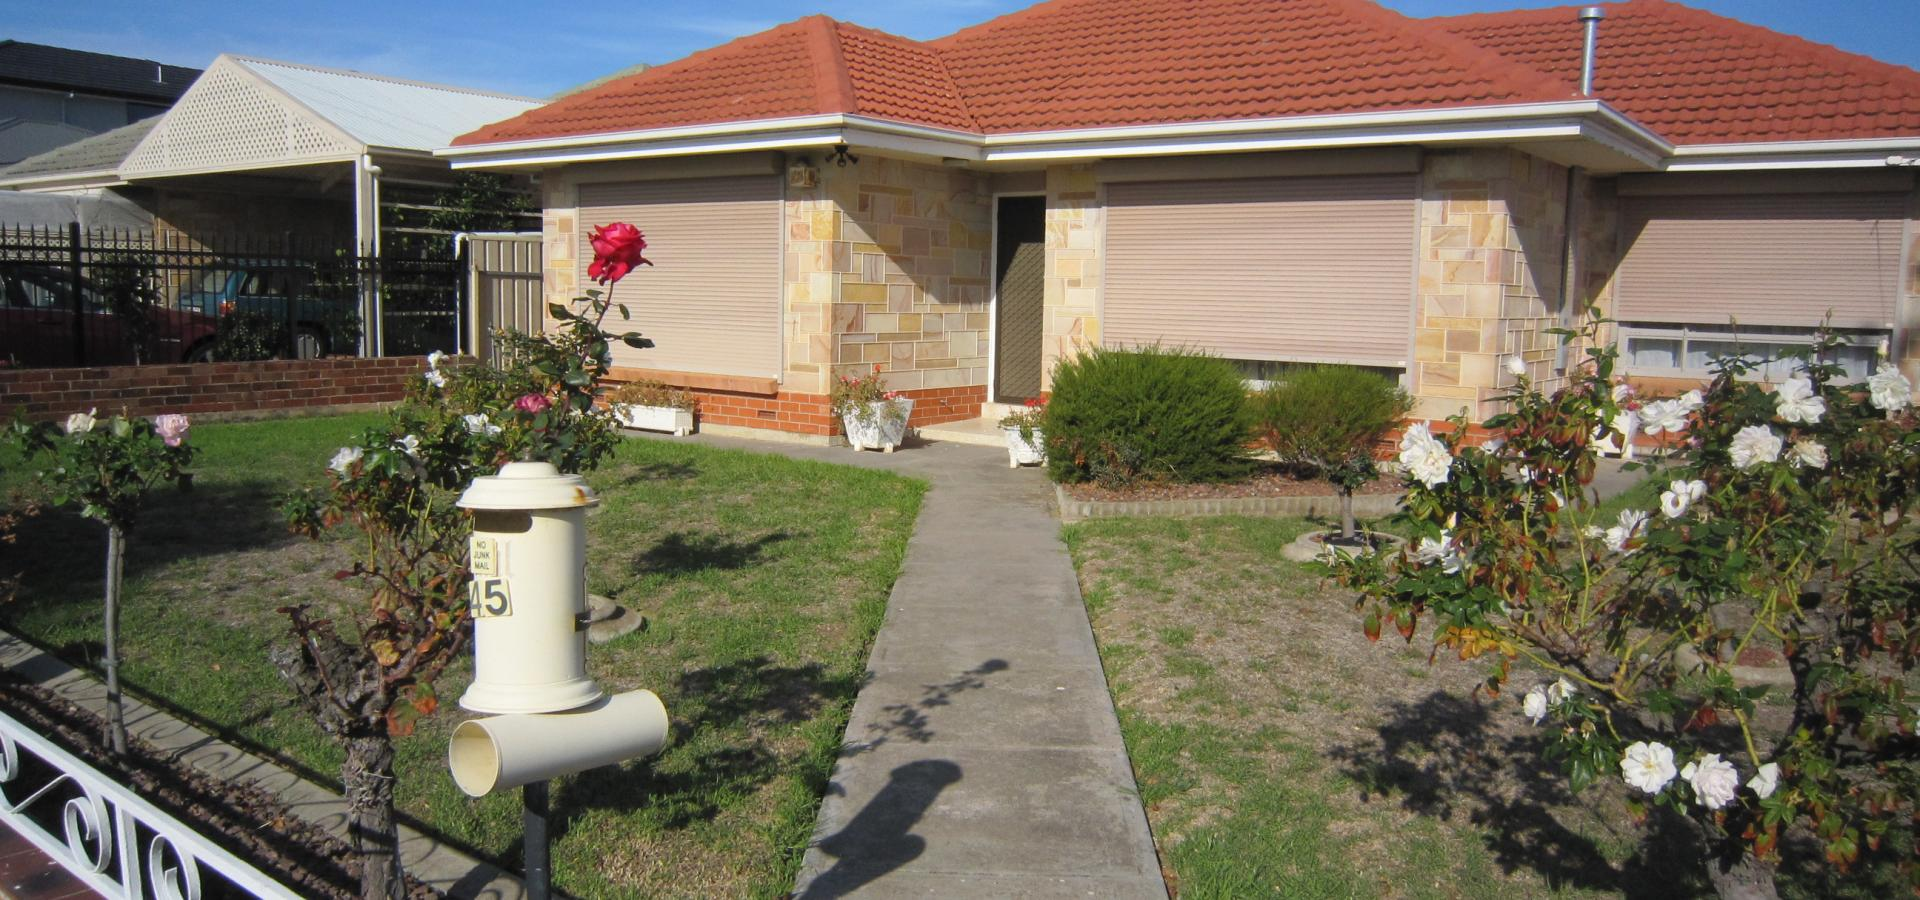 ONLY $395 PER WEEK! CALL TO INSPECT. GREAT LOCATION, CLOSE TO SHOPS, SCHOOL, BEACH & TRANPSORT